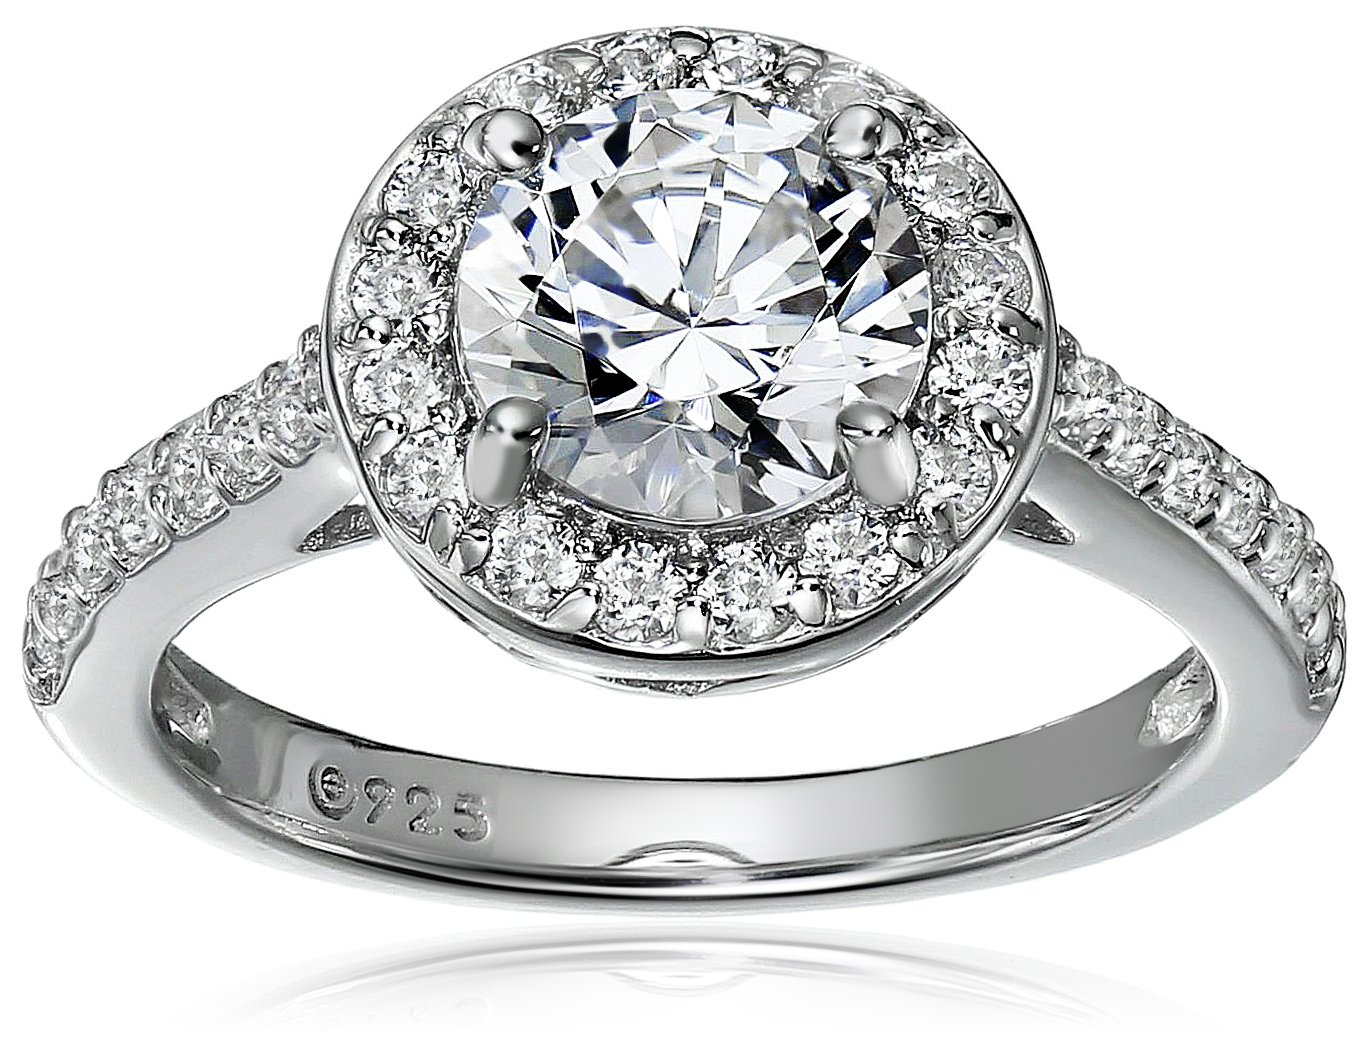 7b88ead364024 Platinum-Plated Sterling Silver Round-Cut Halo Ring made with Swarovski  Zirconia, Size 5